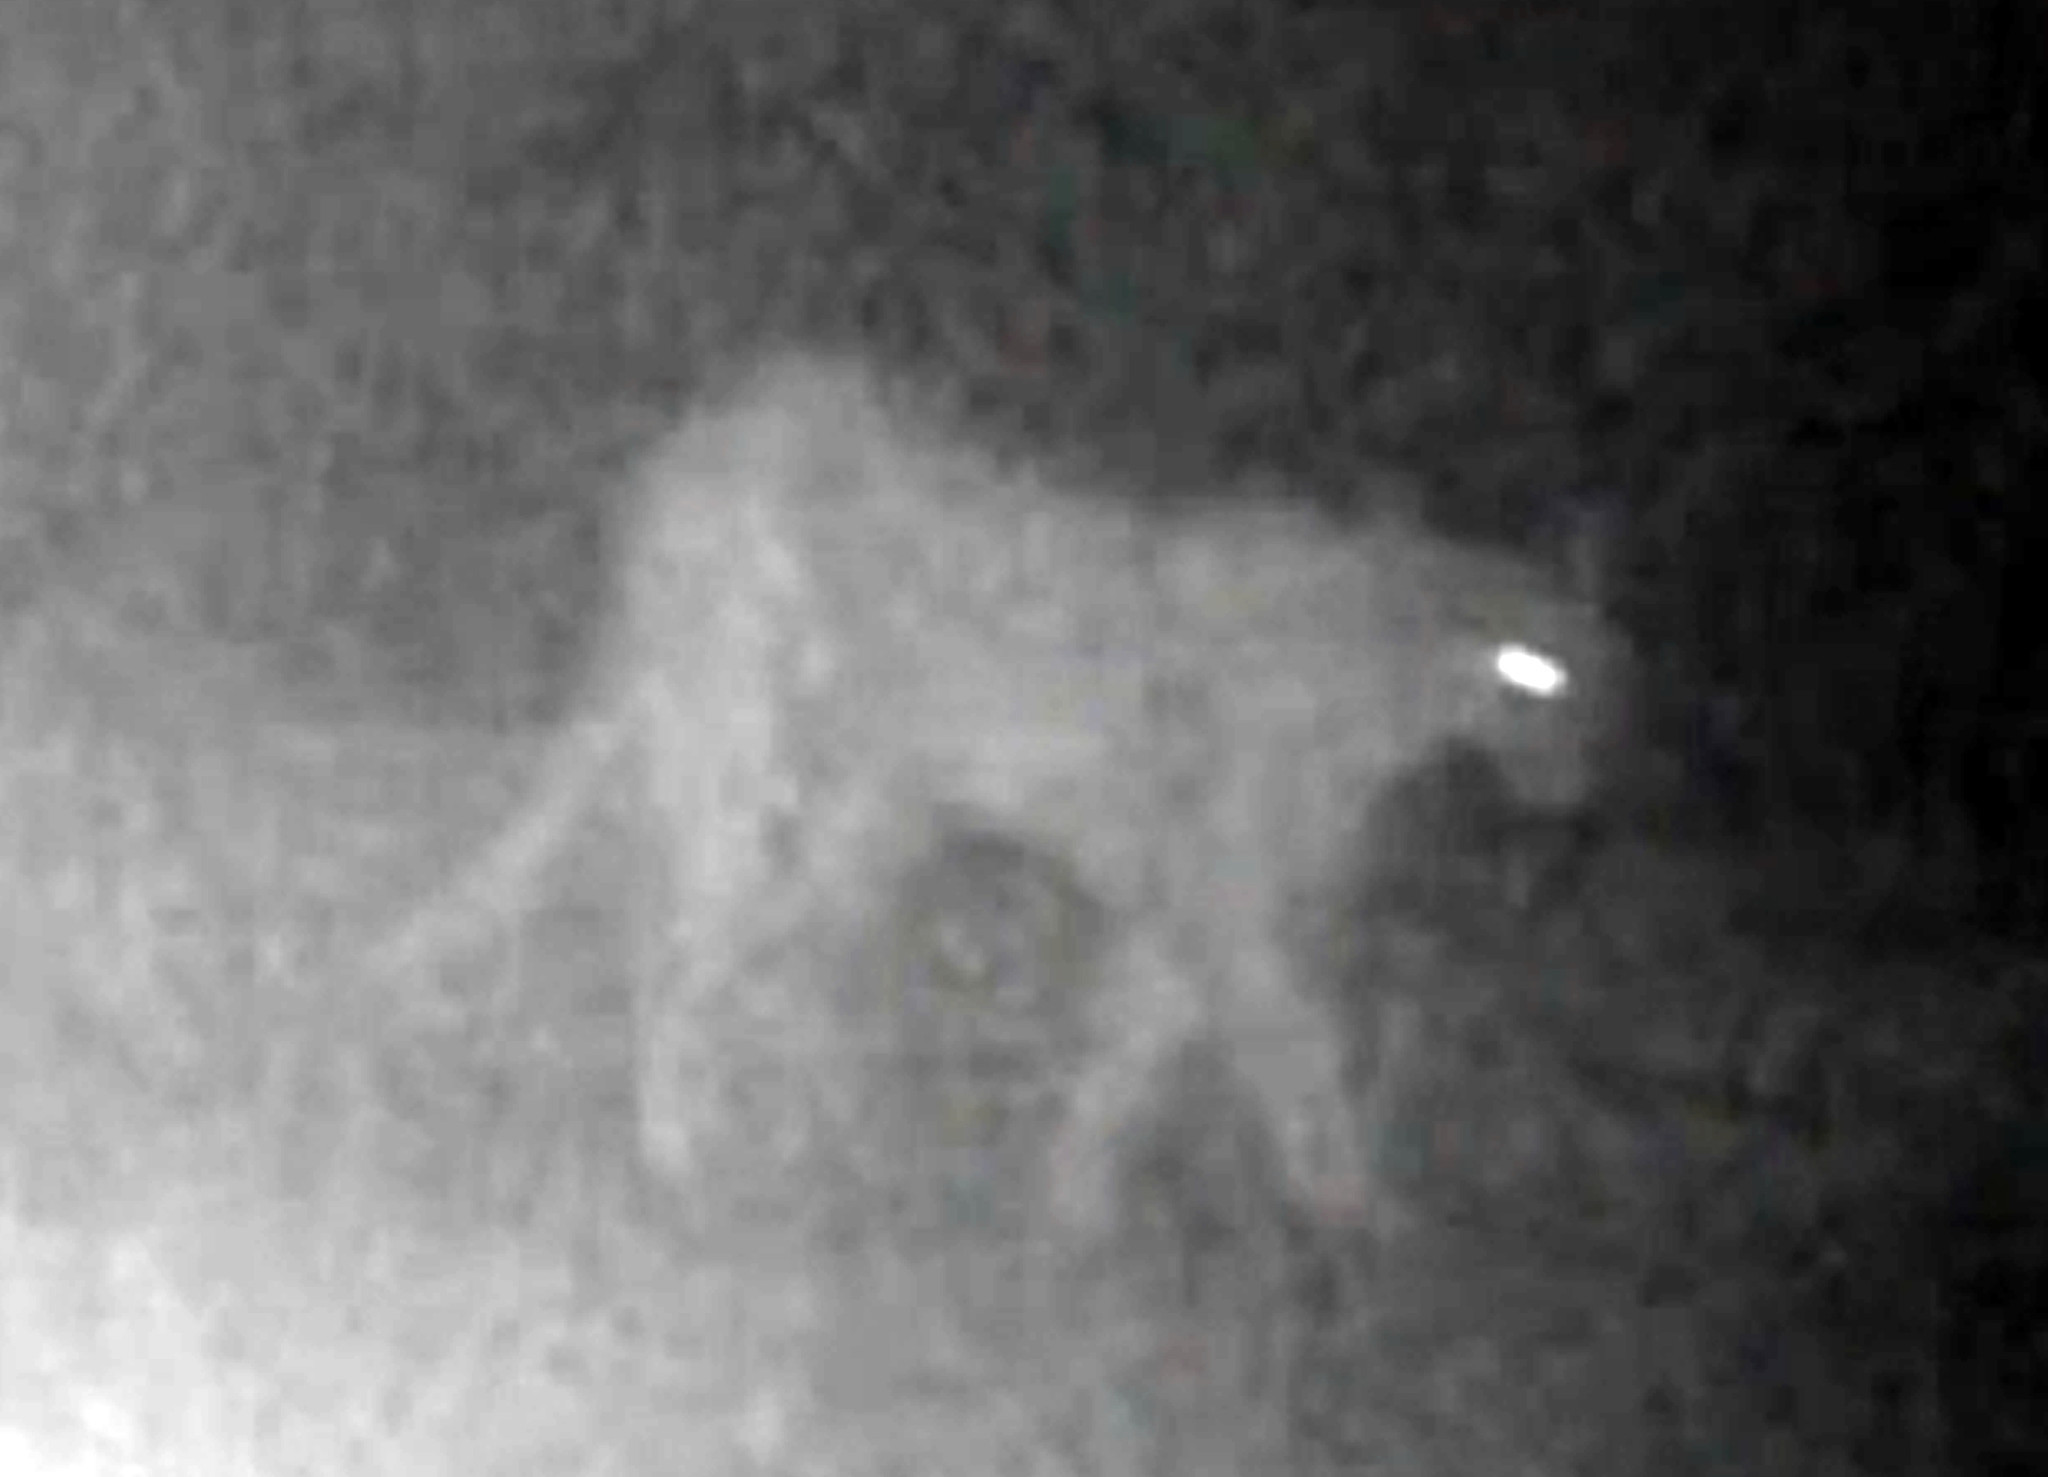 Mountain lion involved in attack on California 6-year-old captured and euthanized, officials say